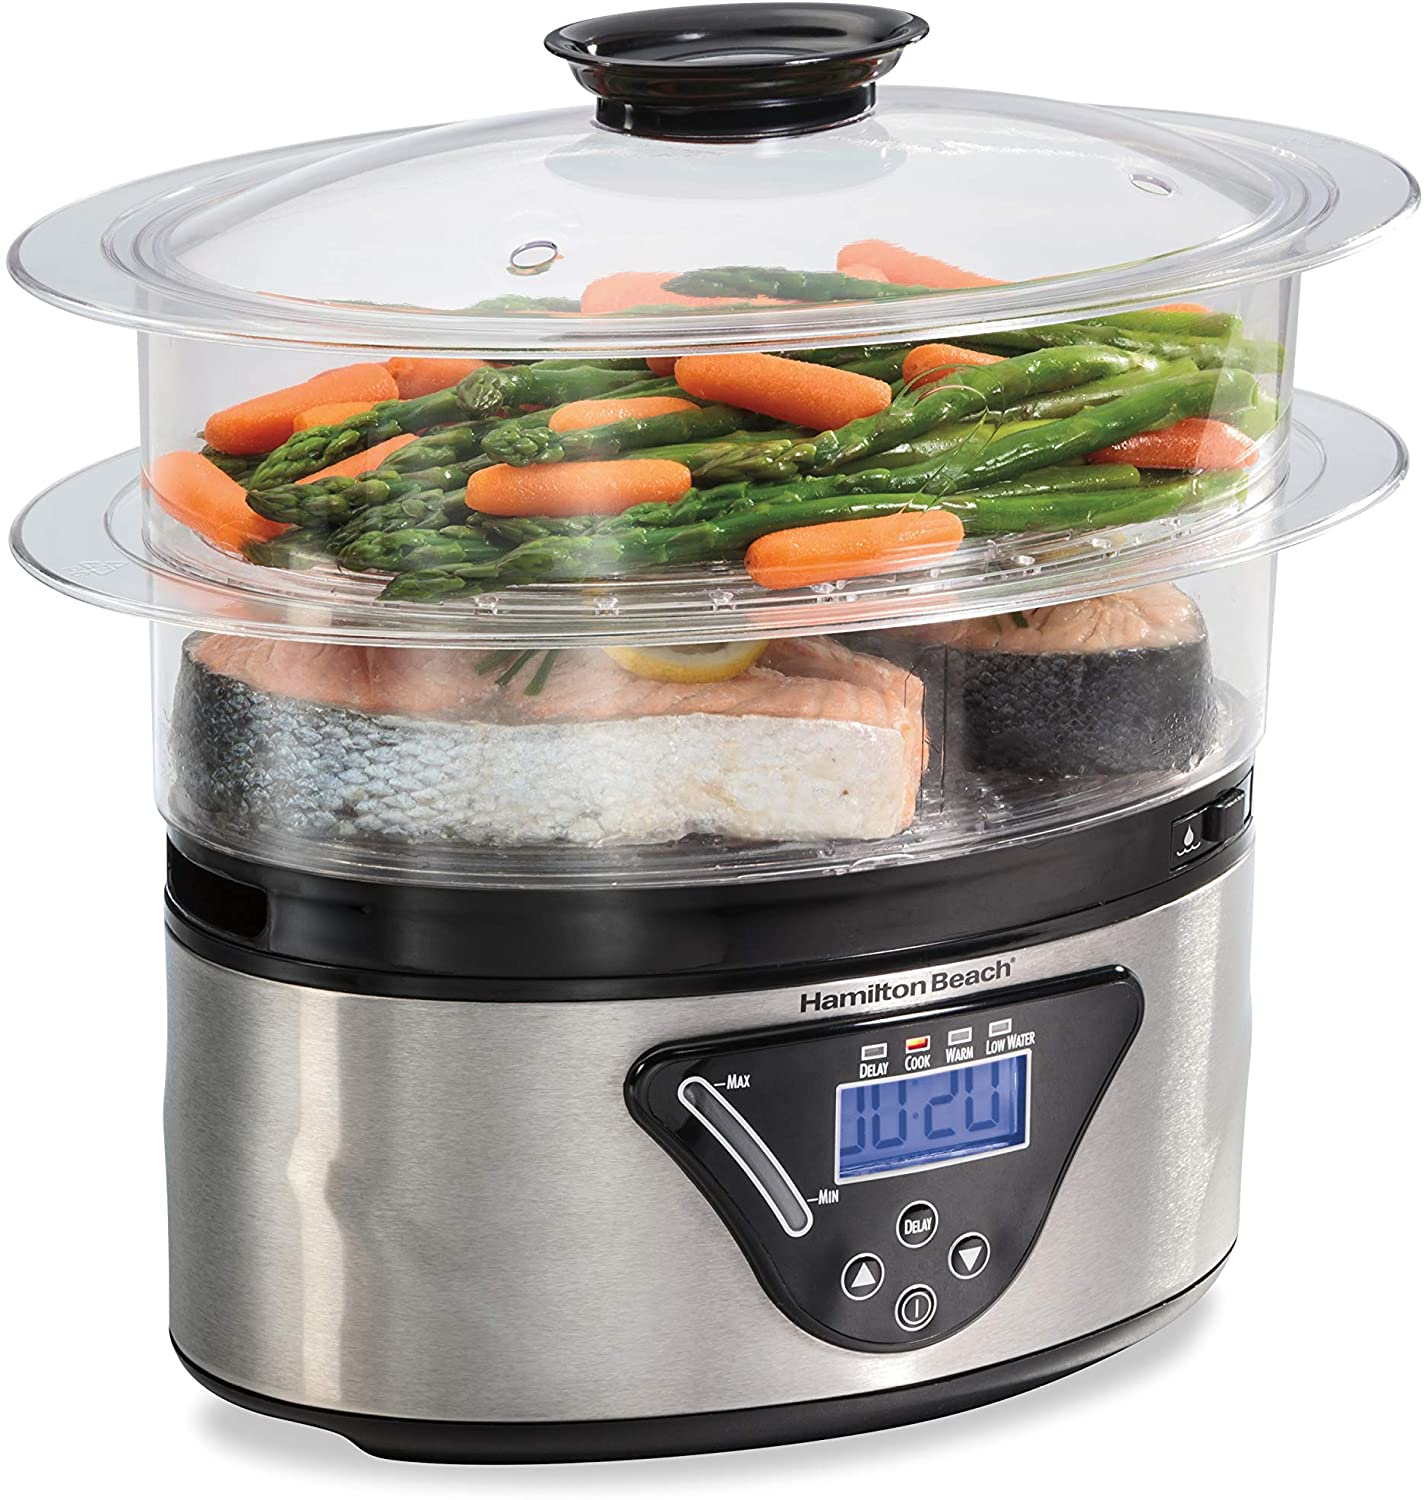 Hamilton Beach Digital 37530A Food Steamer